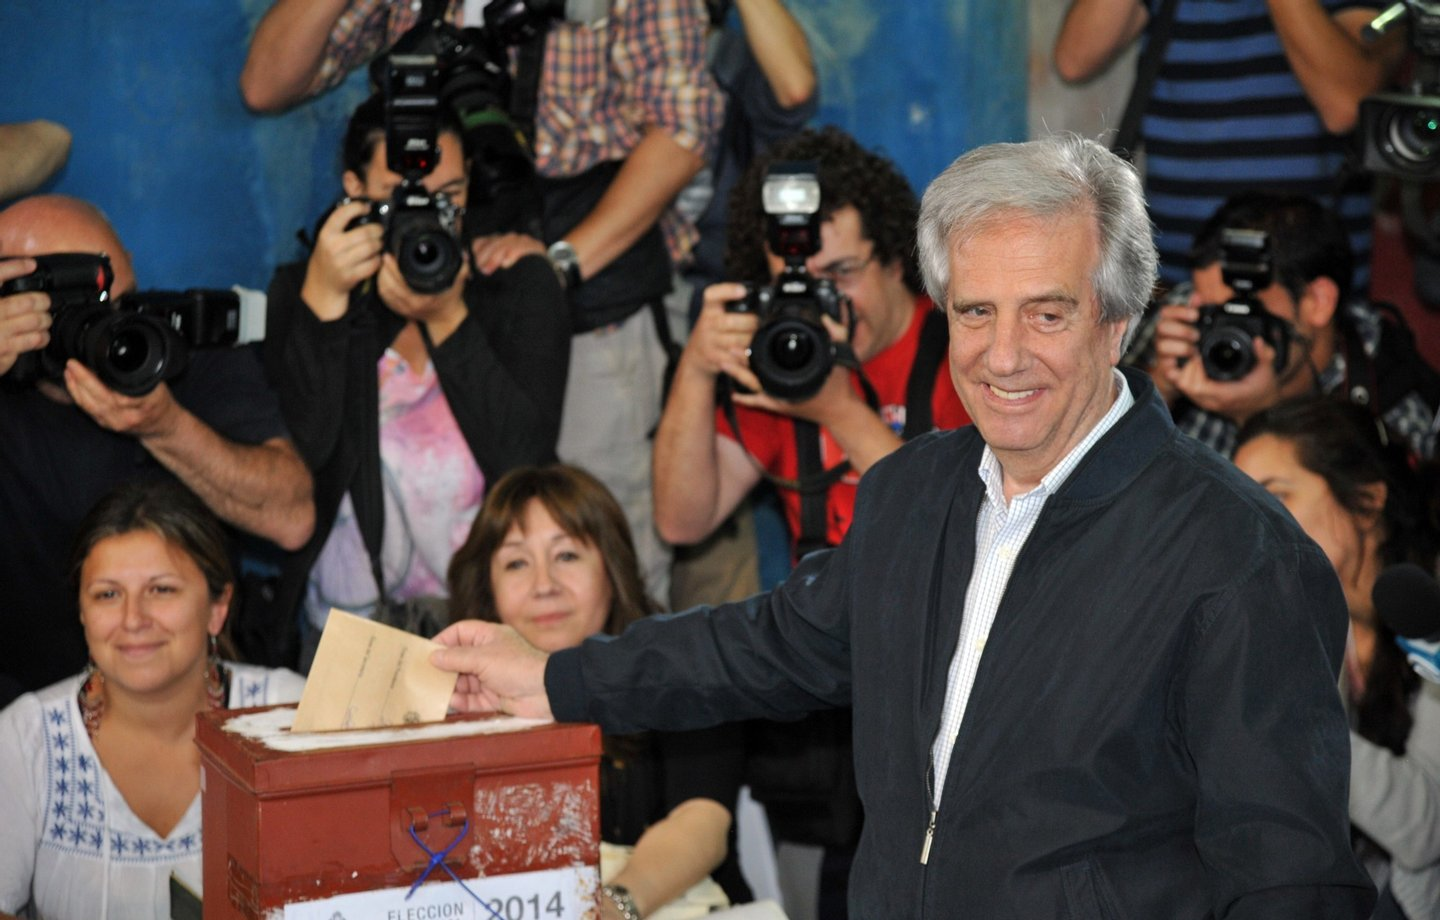 The presidential candidate of the Frente Amplio (Broad Front) party, former president (2005-2010) Tabare Vazquez, casts his vote at a polling station in Montevideo, on October 26, 2014. Polls opened in Uruguay Sunday to elect a successor to folksy iconoclast President Jose Mujica, who remains popular but cannot stand for re-election under term limits. Polling began at 8:00 am (1000 GMT) with Mujica looking to hand power back to his predecessor, cancer doctor Tabare Vazquez of the Broad Front, who needs 50 percent plus one vote to avoid a runoff with Luis Lacalle Pou of the National Party or Pedro Bordaberry, the son of a former dictator who is running on the Colorado ticket.  AFP PHOTO/Guillermo LEGARIA        (Photo credit should read GUILLERMO LEGARIA/AFP/Getty Images)